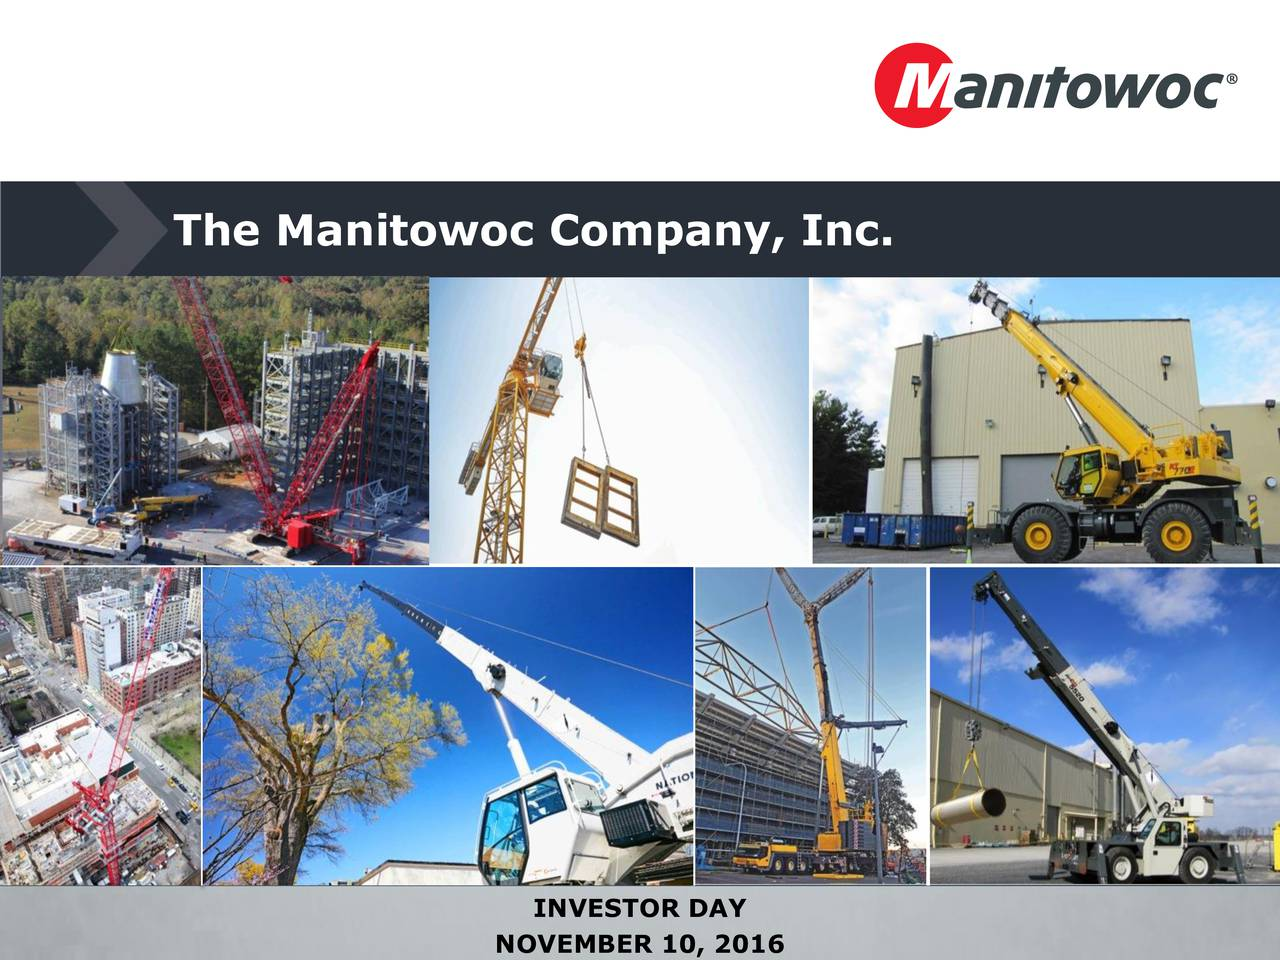 manitowoc machine company